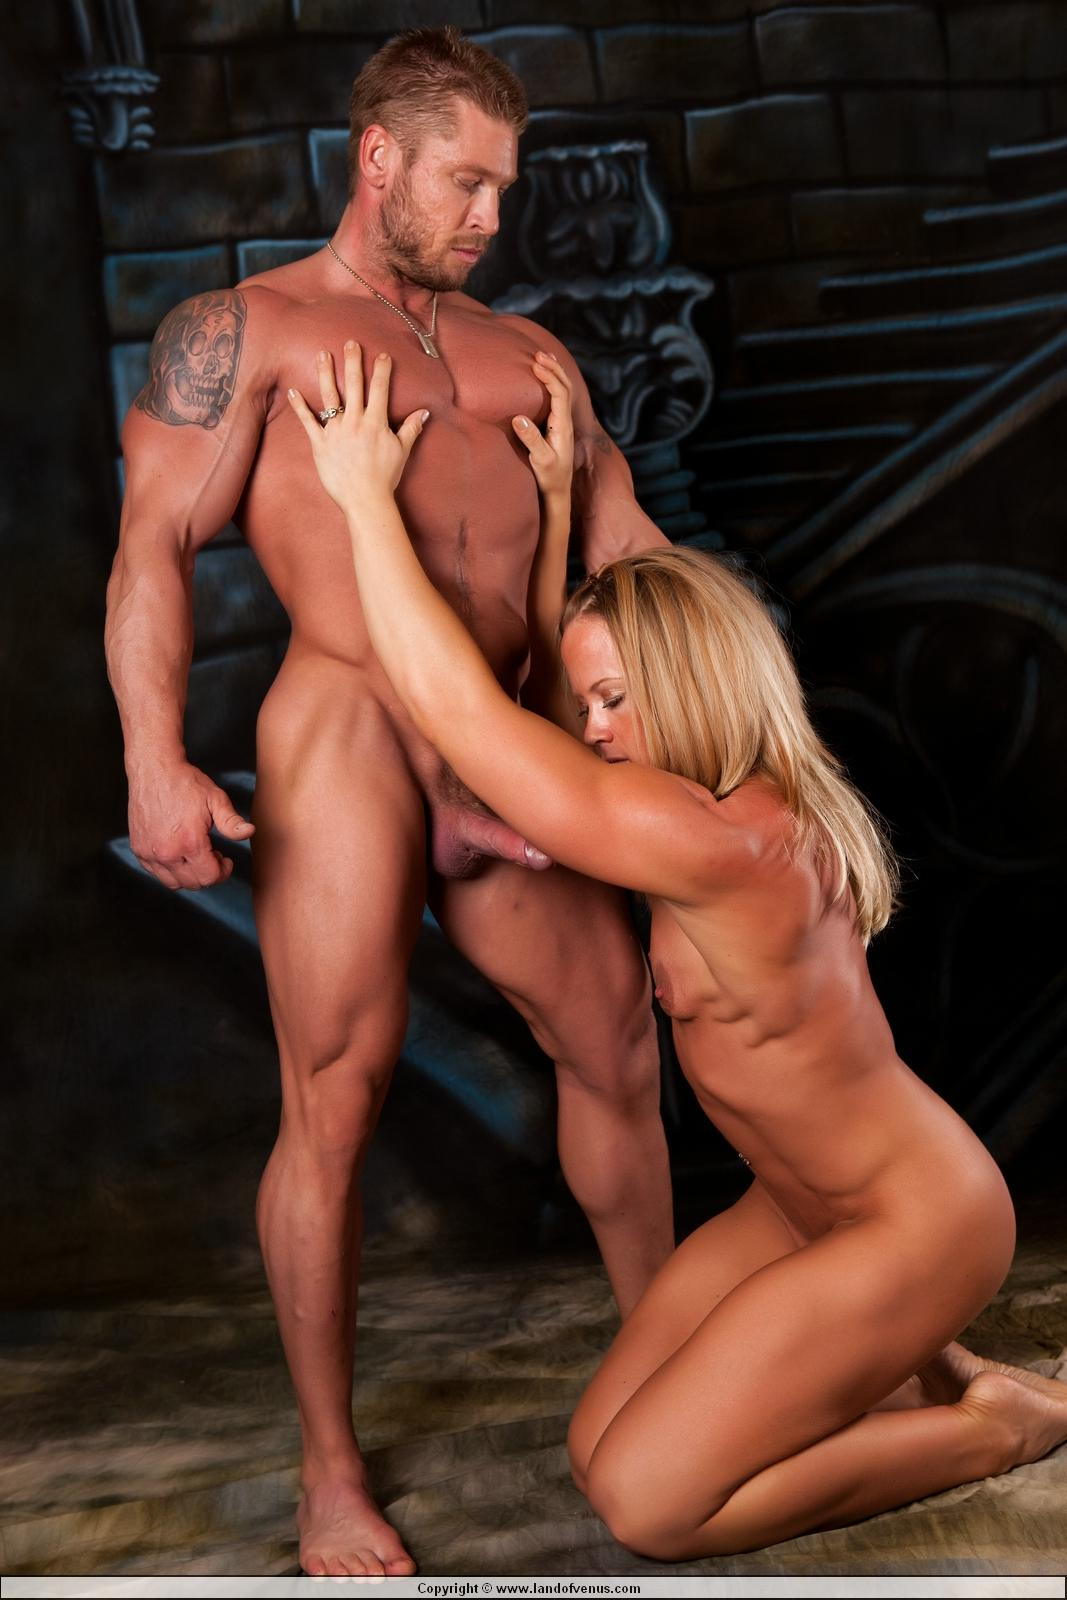 Xxx latest free galleries of muscular bodybuilding  nackt beauty porn star